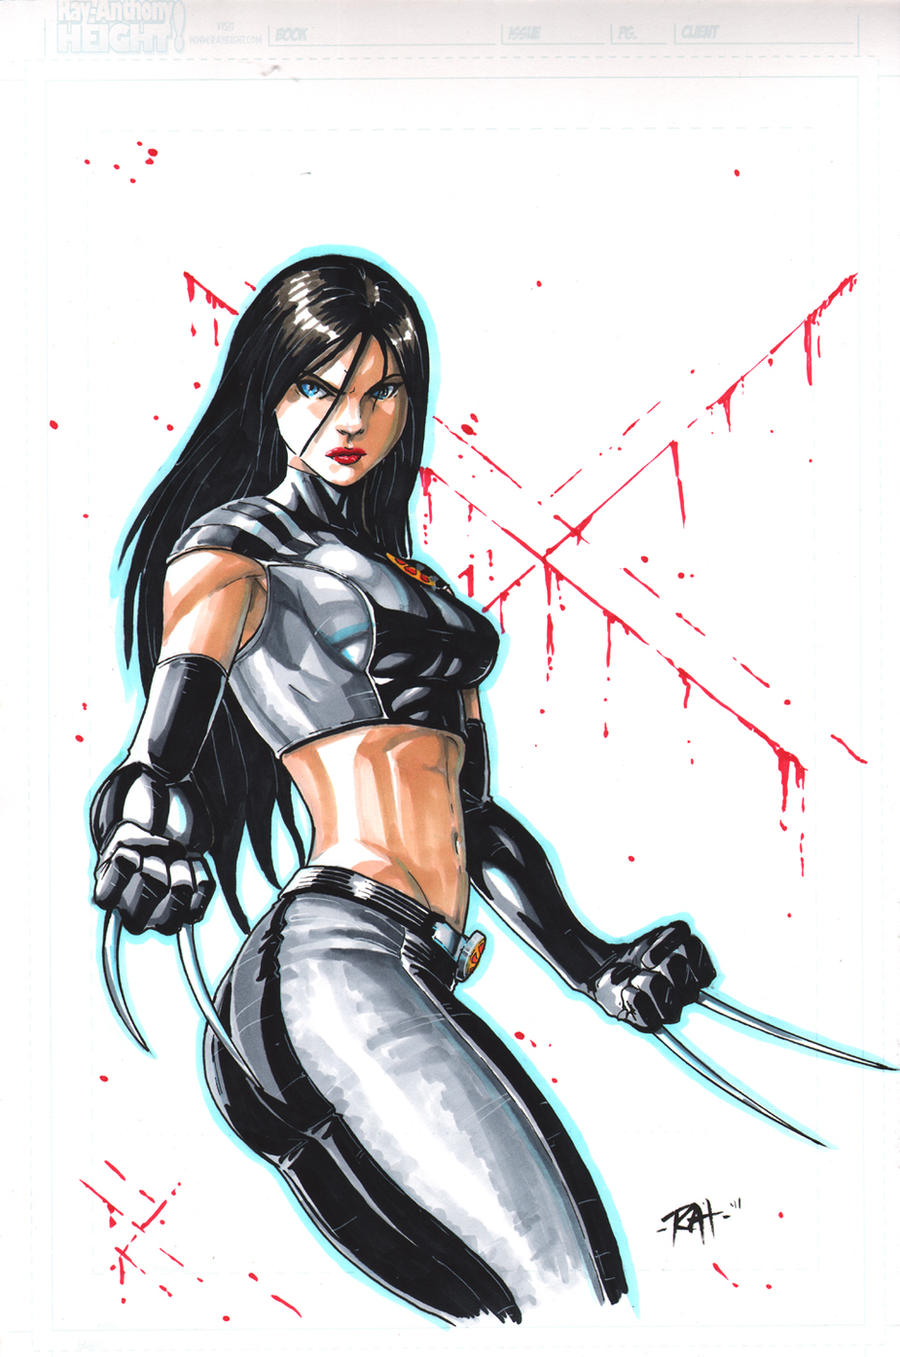 21 Pinups N 20 Days: X-23 by RAHeight2002-2012